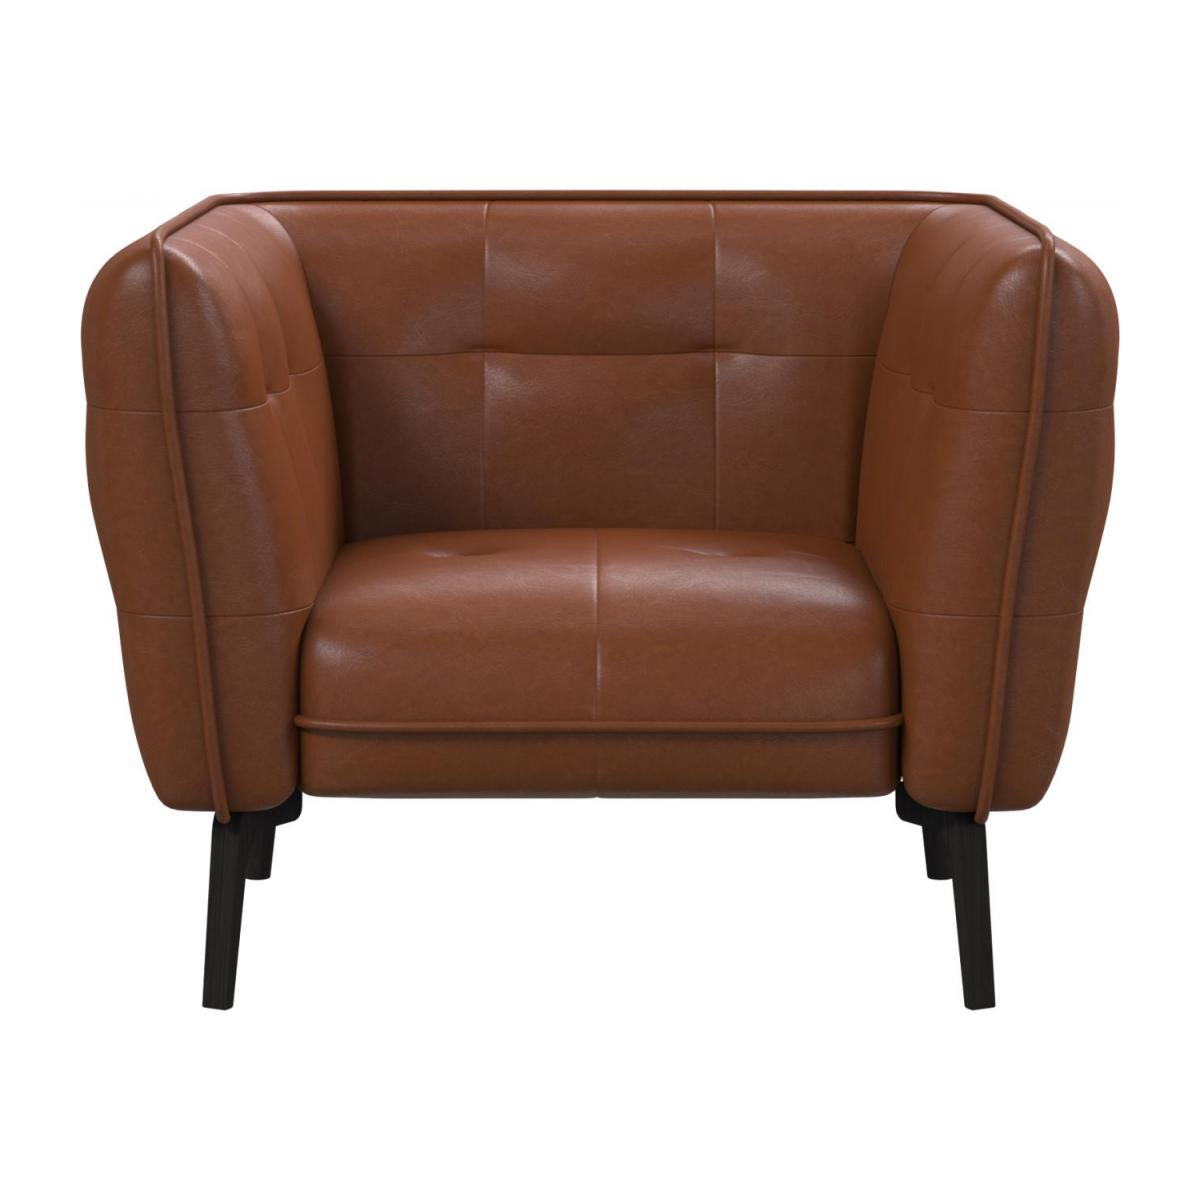 Armchair in Vintage aniline leather, old chestnut and dark feet n°2